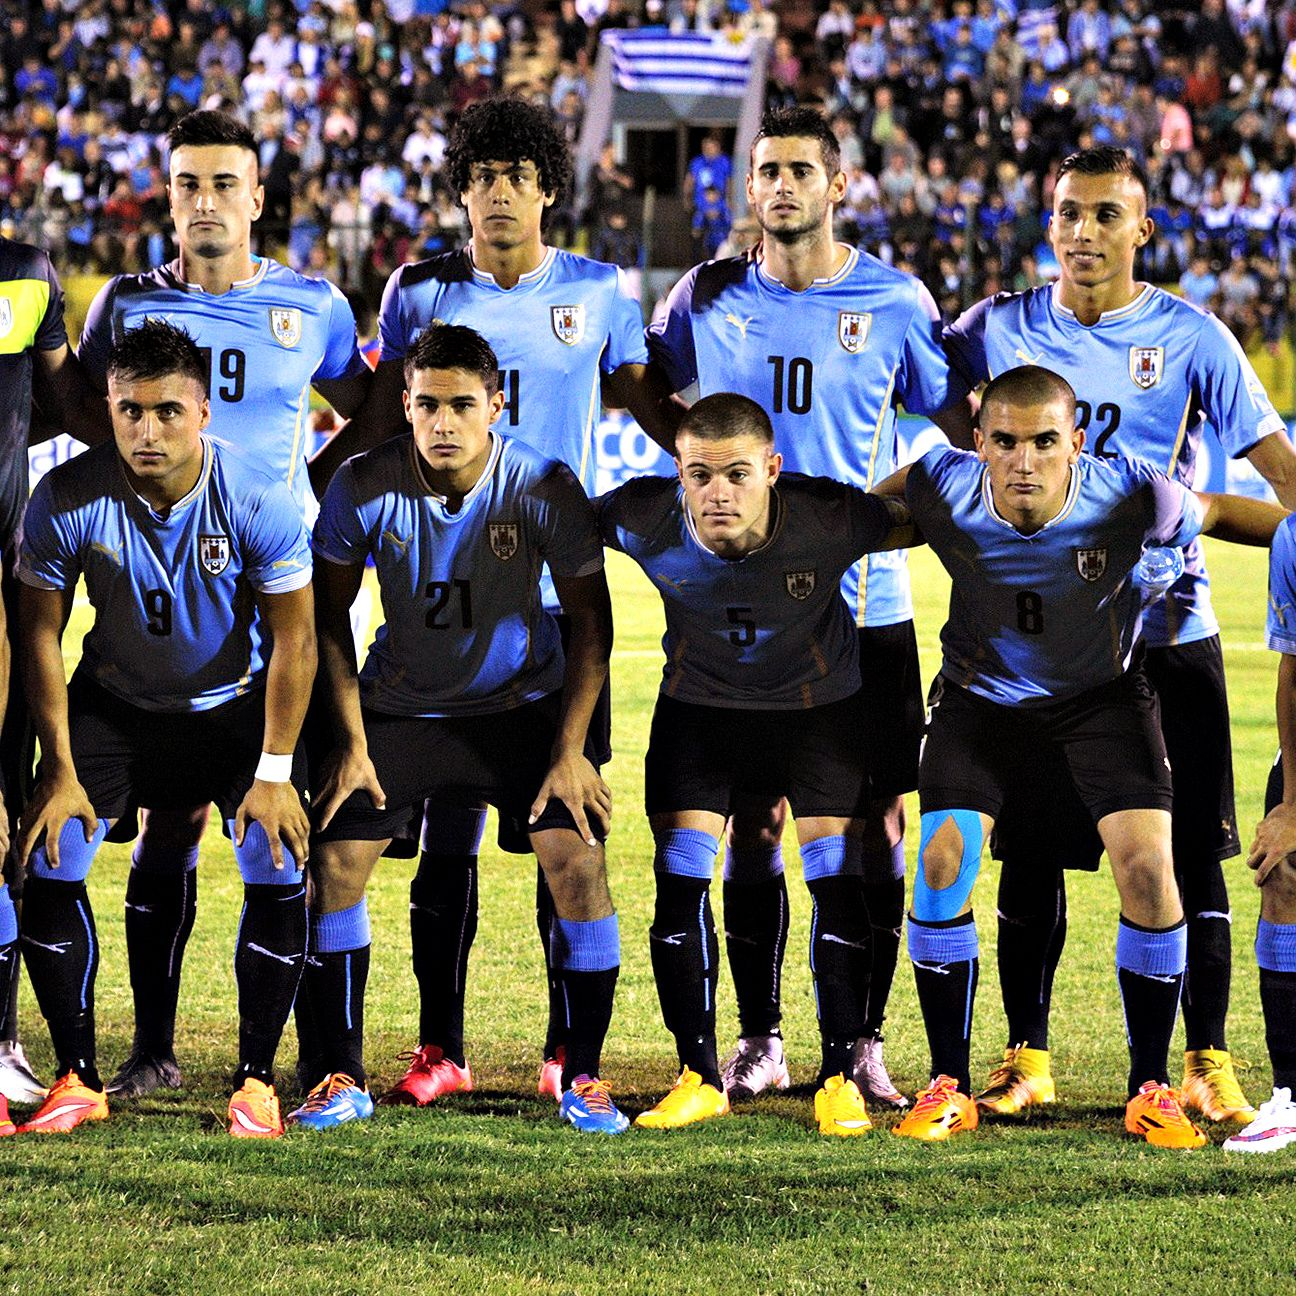 Host Uruguay will look to take down Brazil for a second time when the teams meet in Montevideo's famed Estadio Centenario.